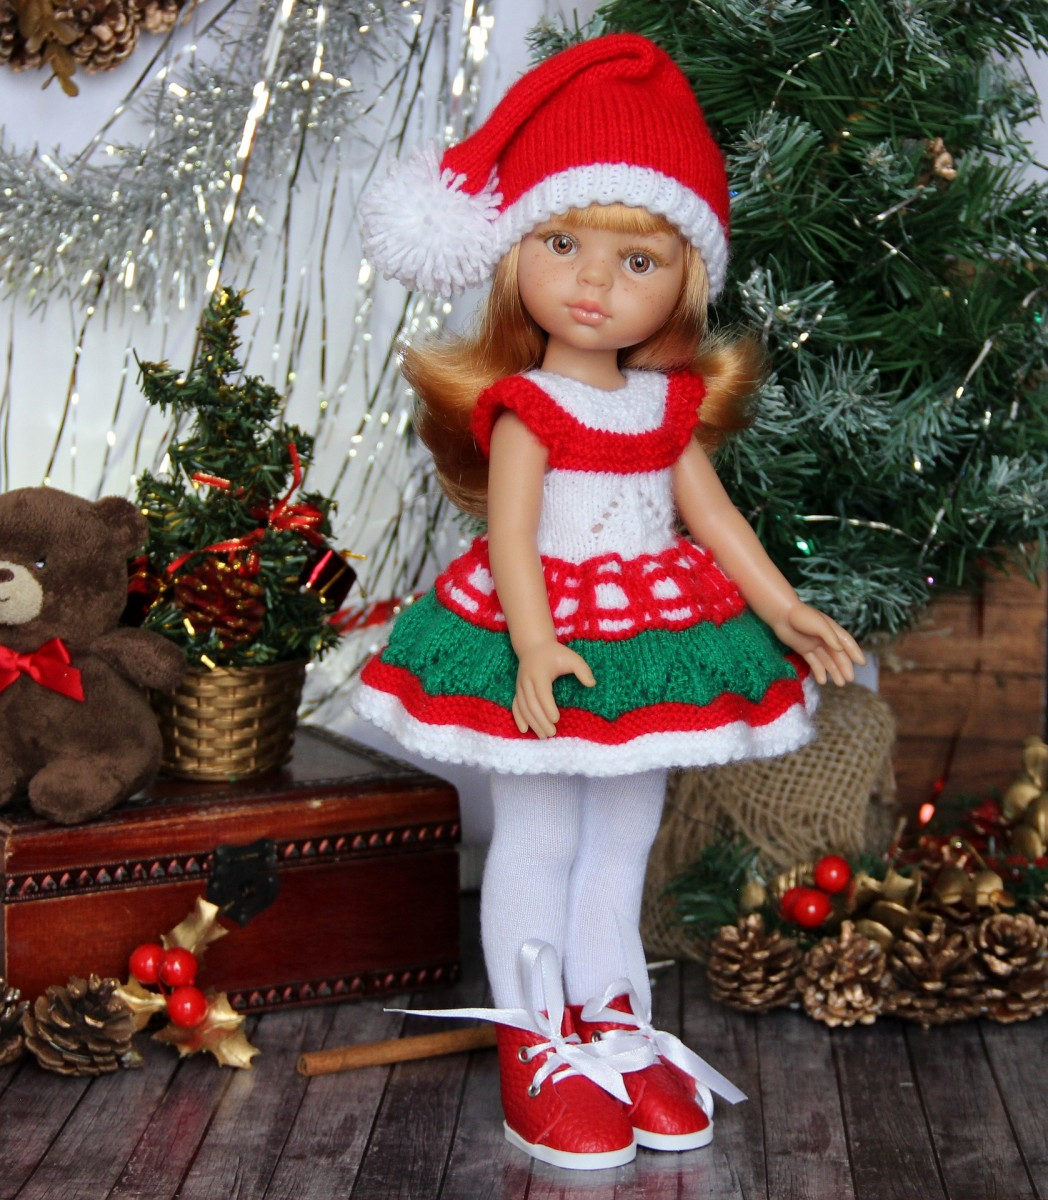 A baby doll wearing a crocheted Christmas dress and hat.